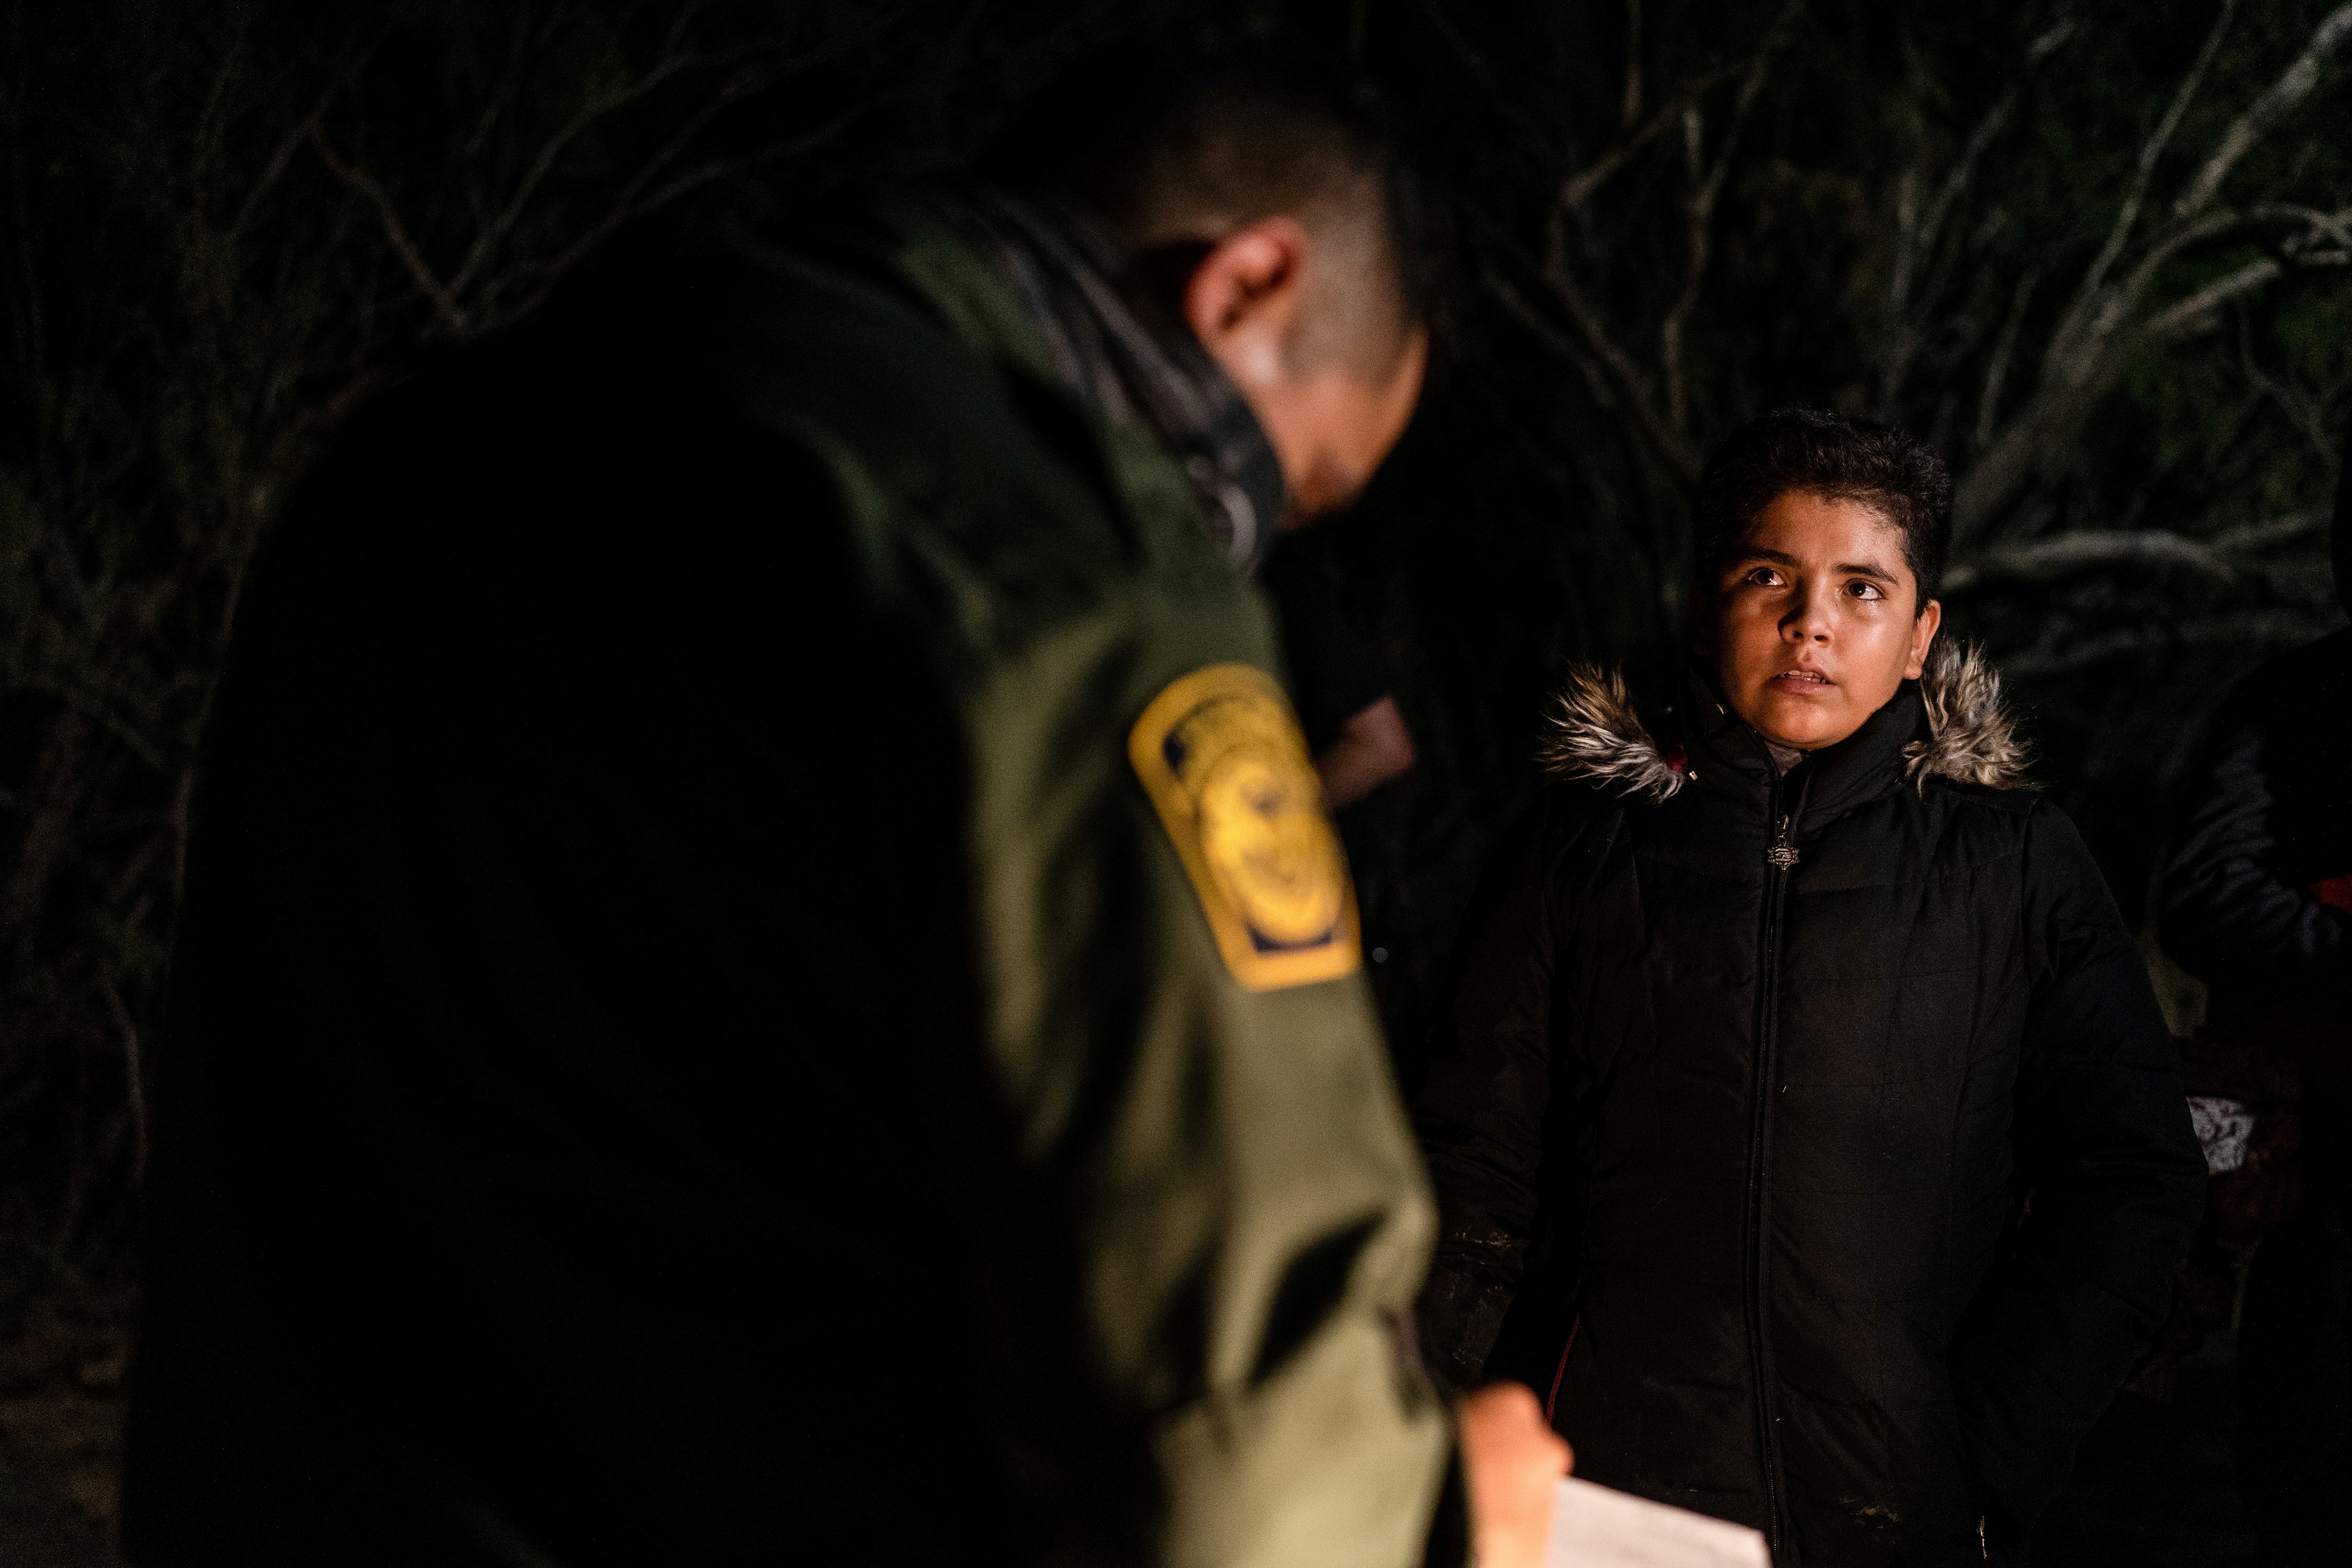 An unaccompanied minor migrant from El Salvador is questioned by the U.S. Border Patrol after crossing the Rio Grande river into the United States from Mexico in Roma, Texas, U.S., April 27, 2021. REUTERS/Go Nakamura